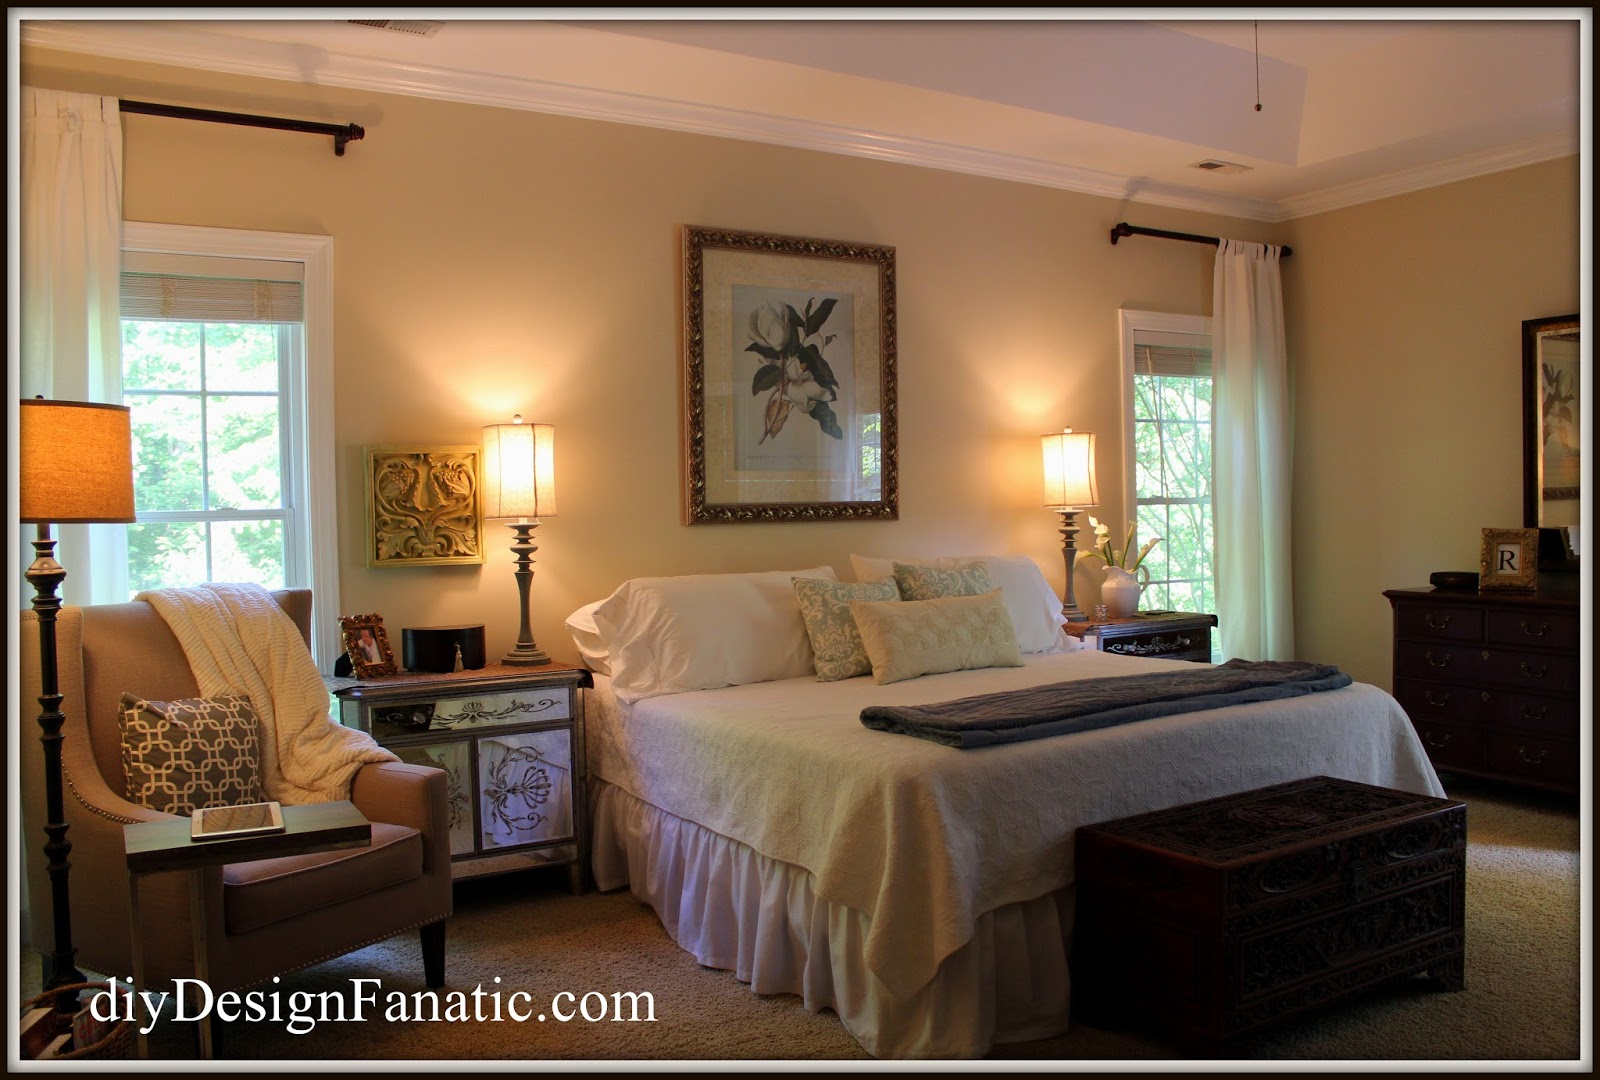 Master Bedroom Paint Colors Sherwin Williams diy design fanatic: new paint for our master bedroom